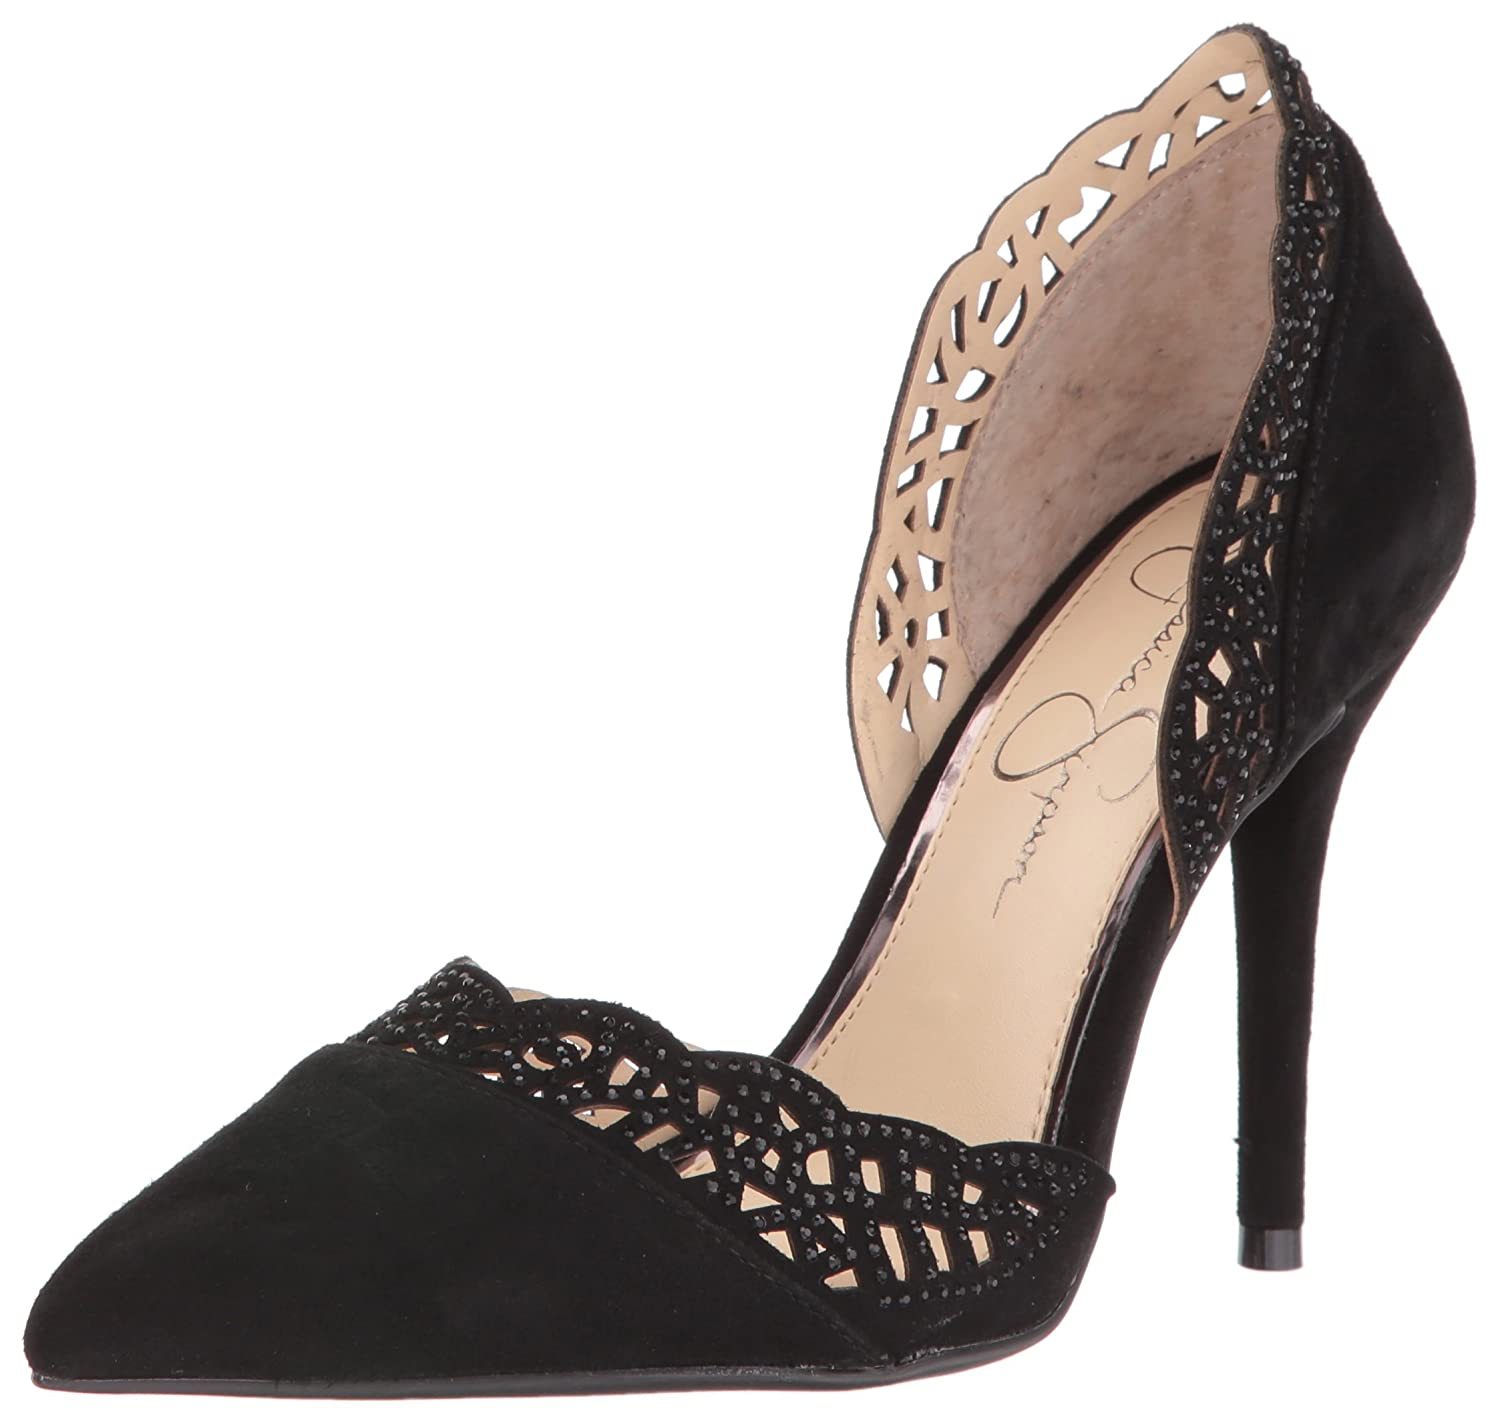 Jessica Simpson Women's Teriann Dress Pump B01HOE3XIA 10 B(M) US|Black